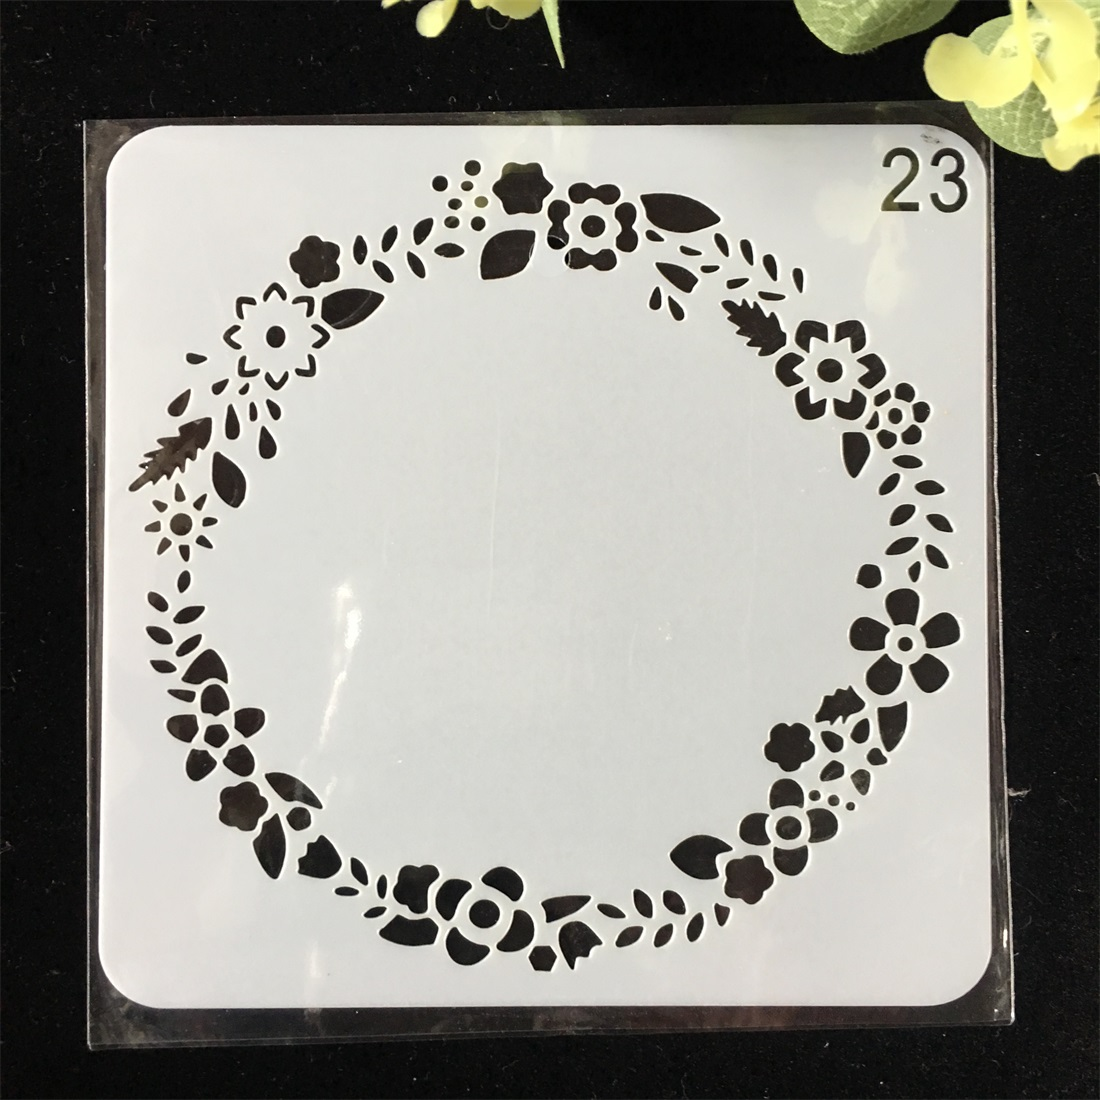 1Pcs 15cm Floral Circle DIY Layering Stencils Wall Painting Scrapbook Coloring Embossing Album Decorative Card Template